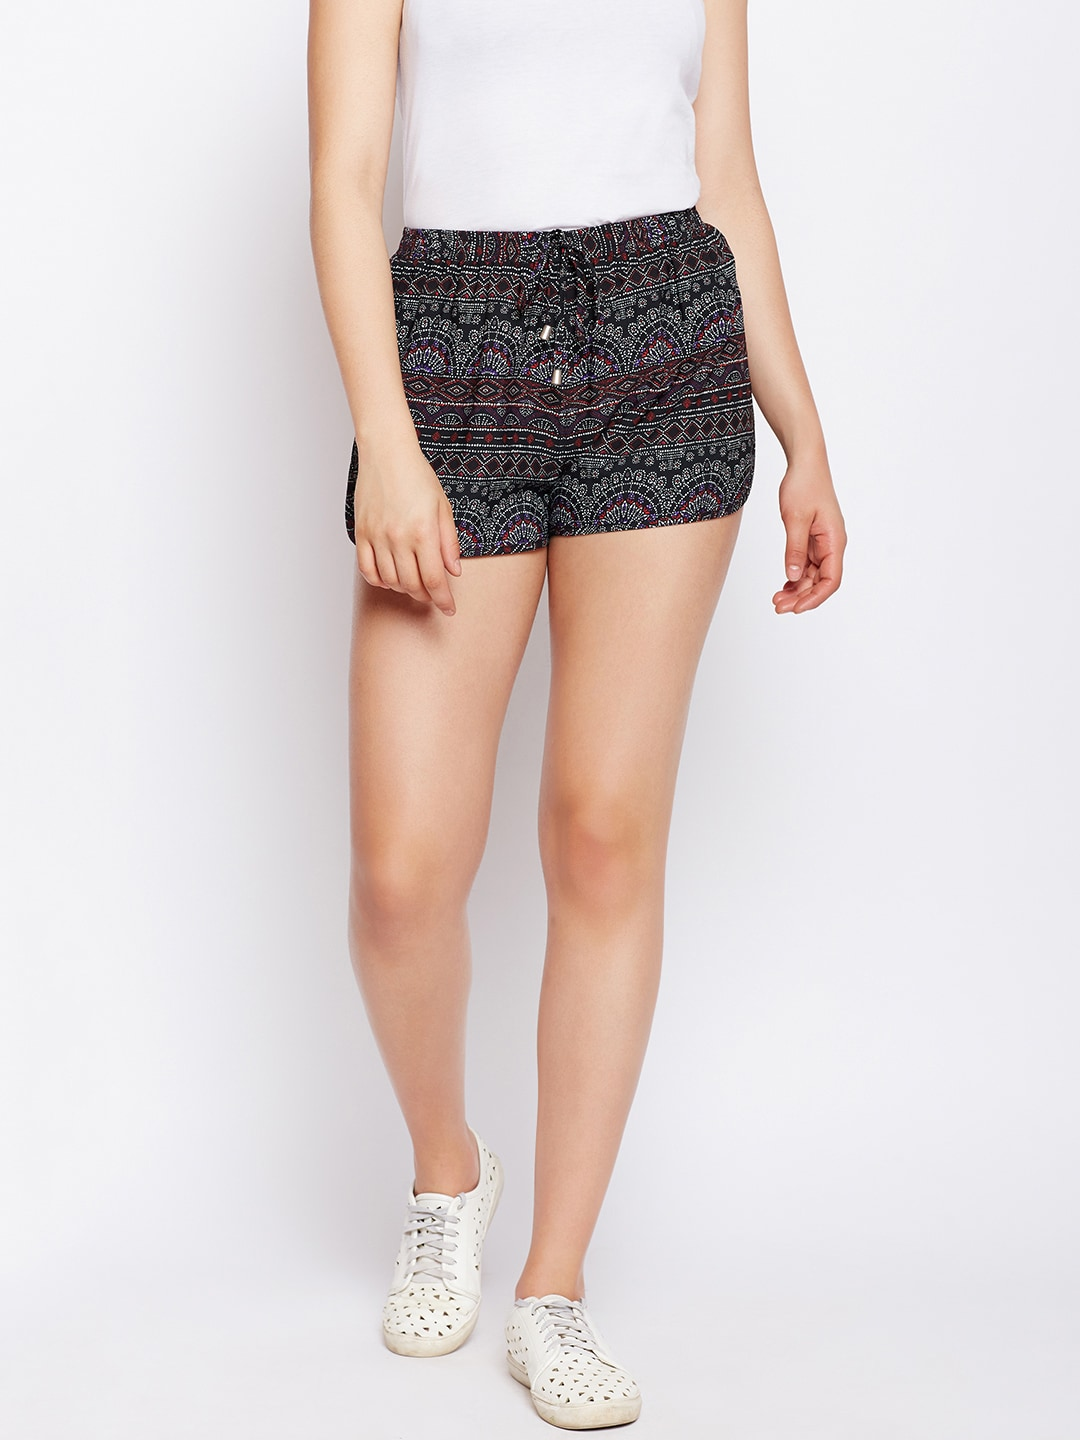 Women s Shorts - Buy Shorts for Women Online in India 256540ca2d7